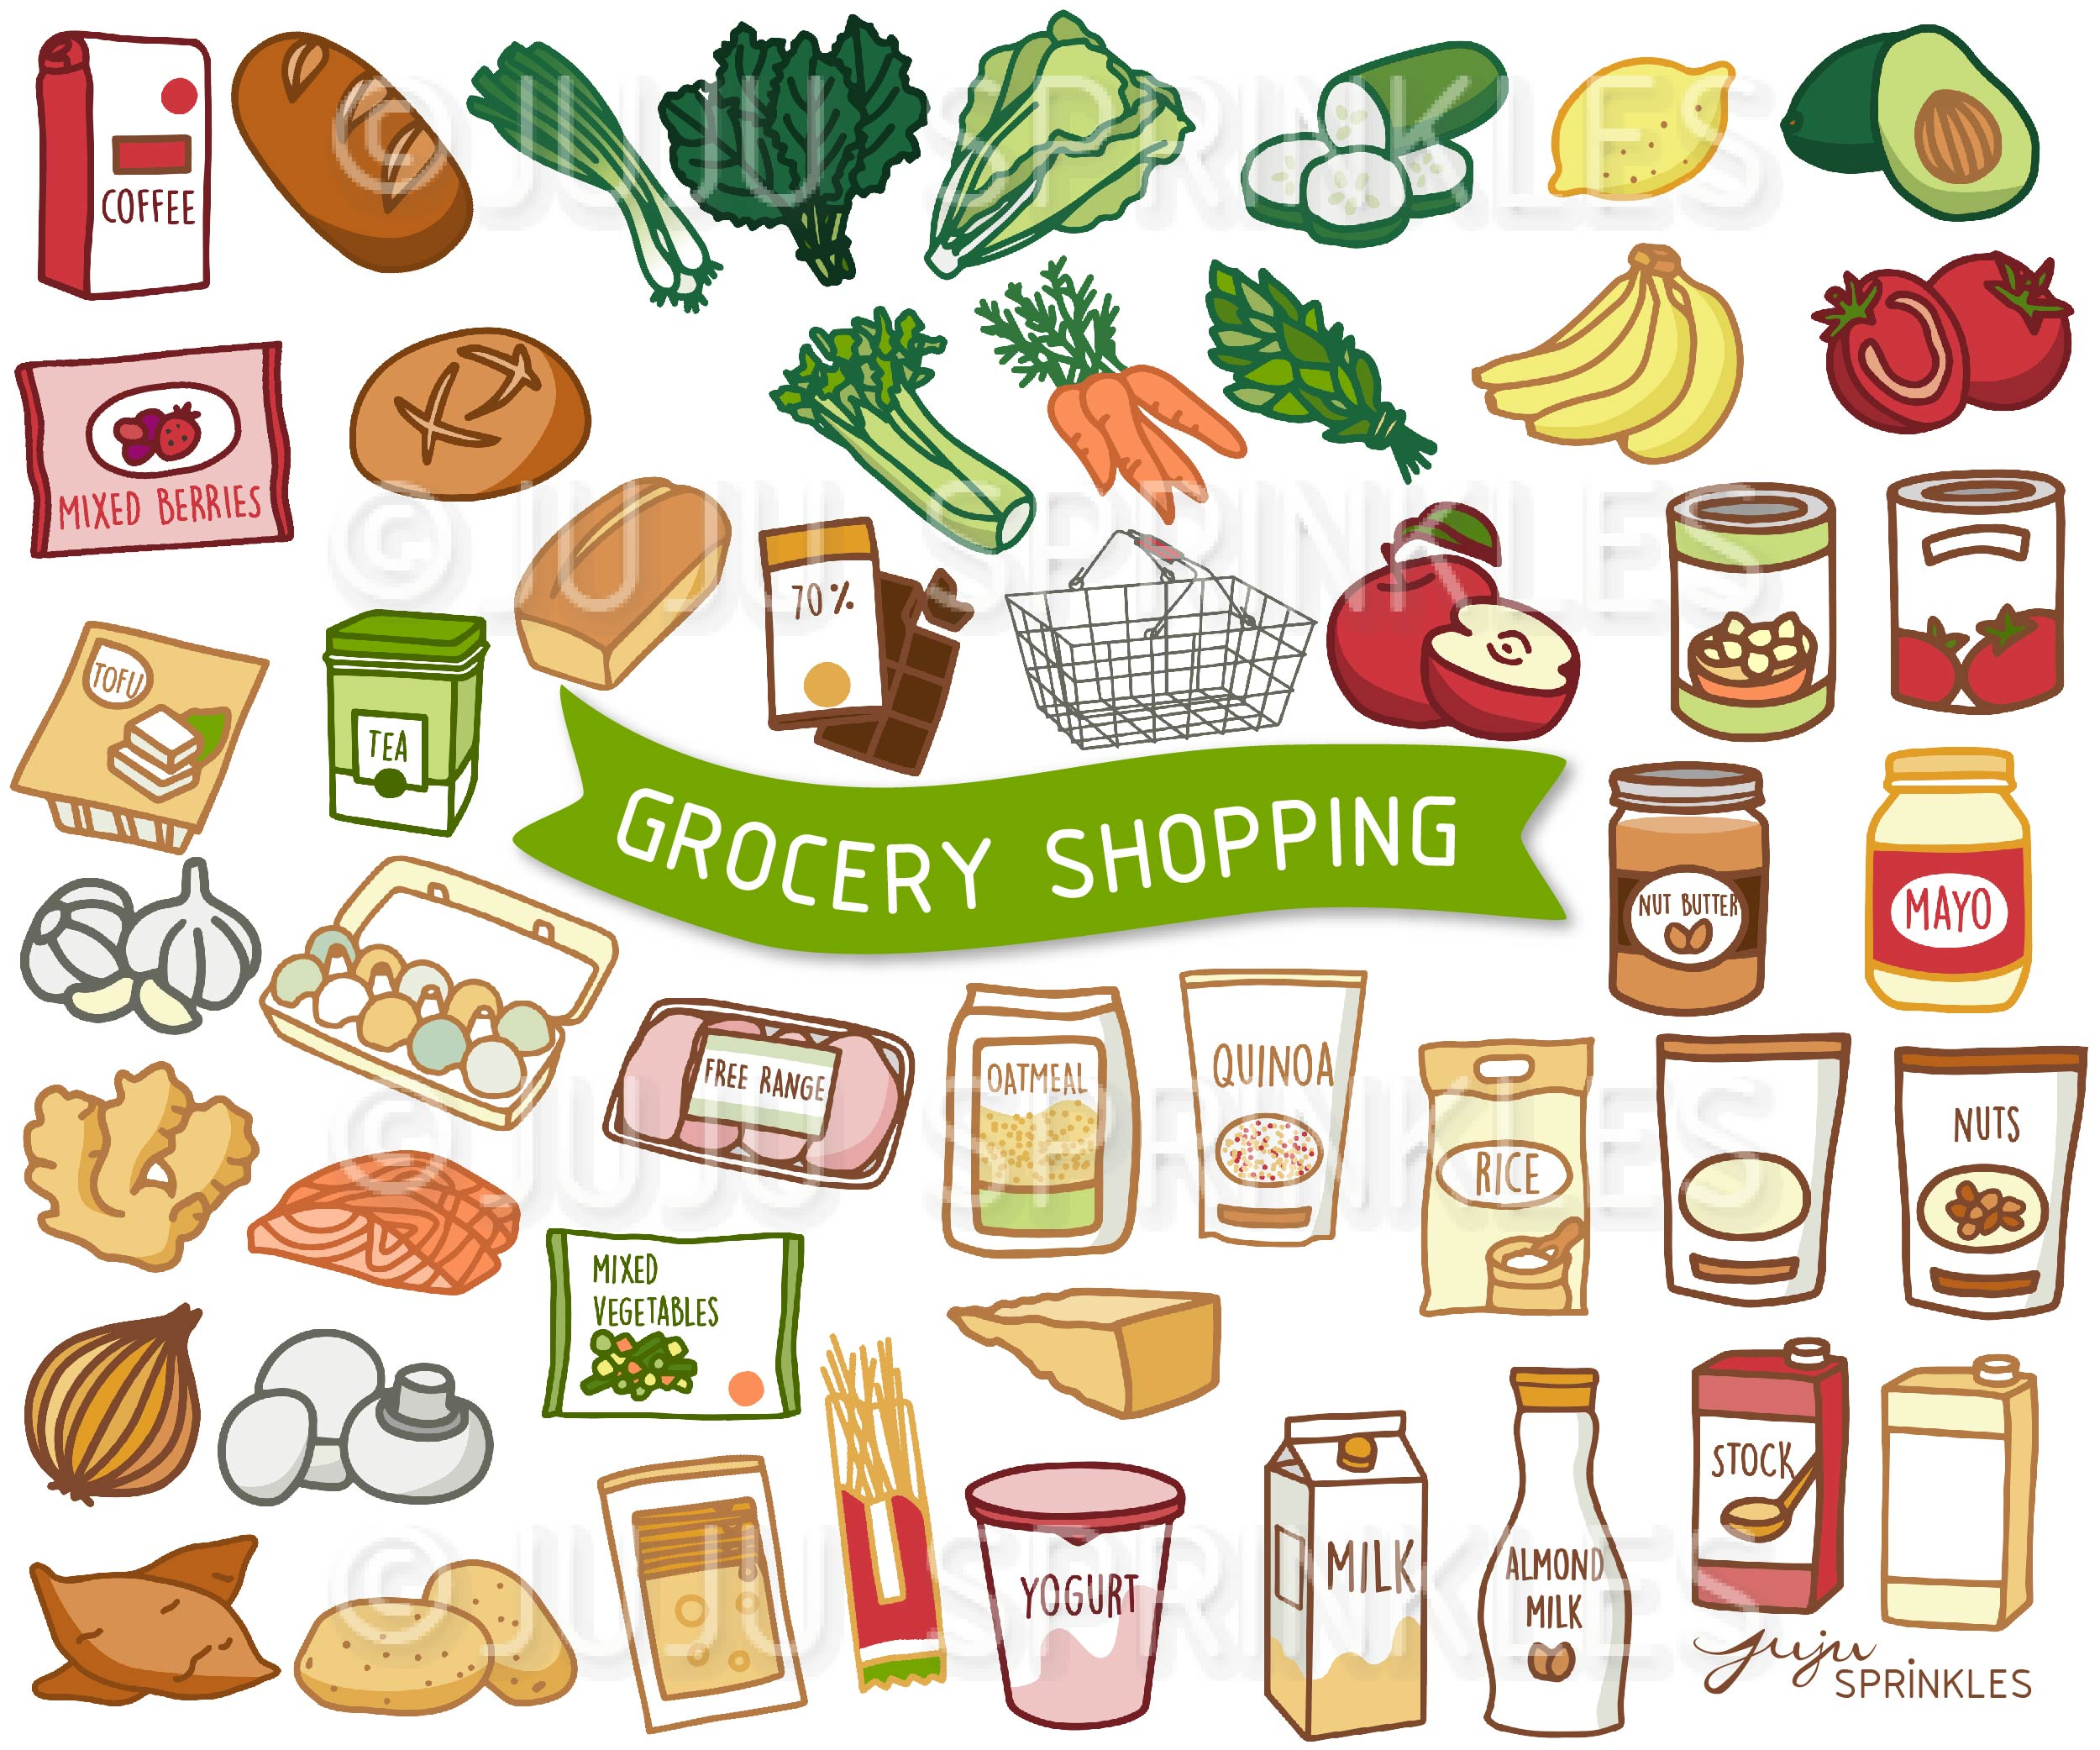 Grocery Shopping Clipart and Sticker Set.